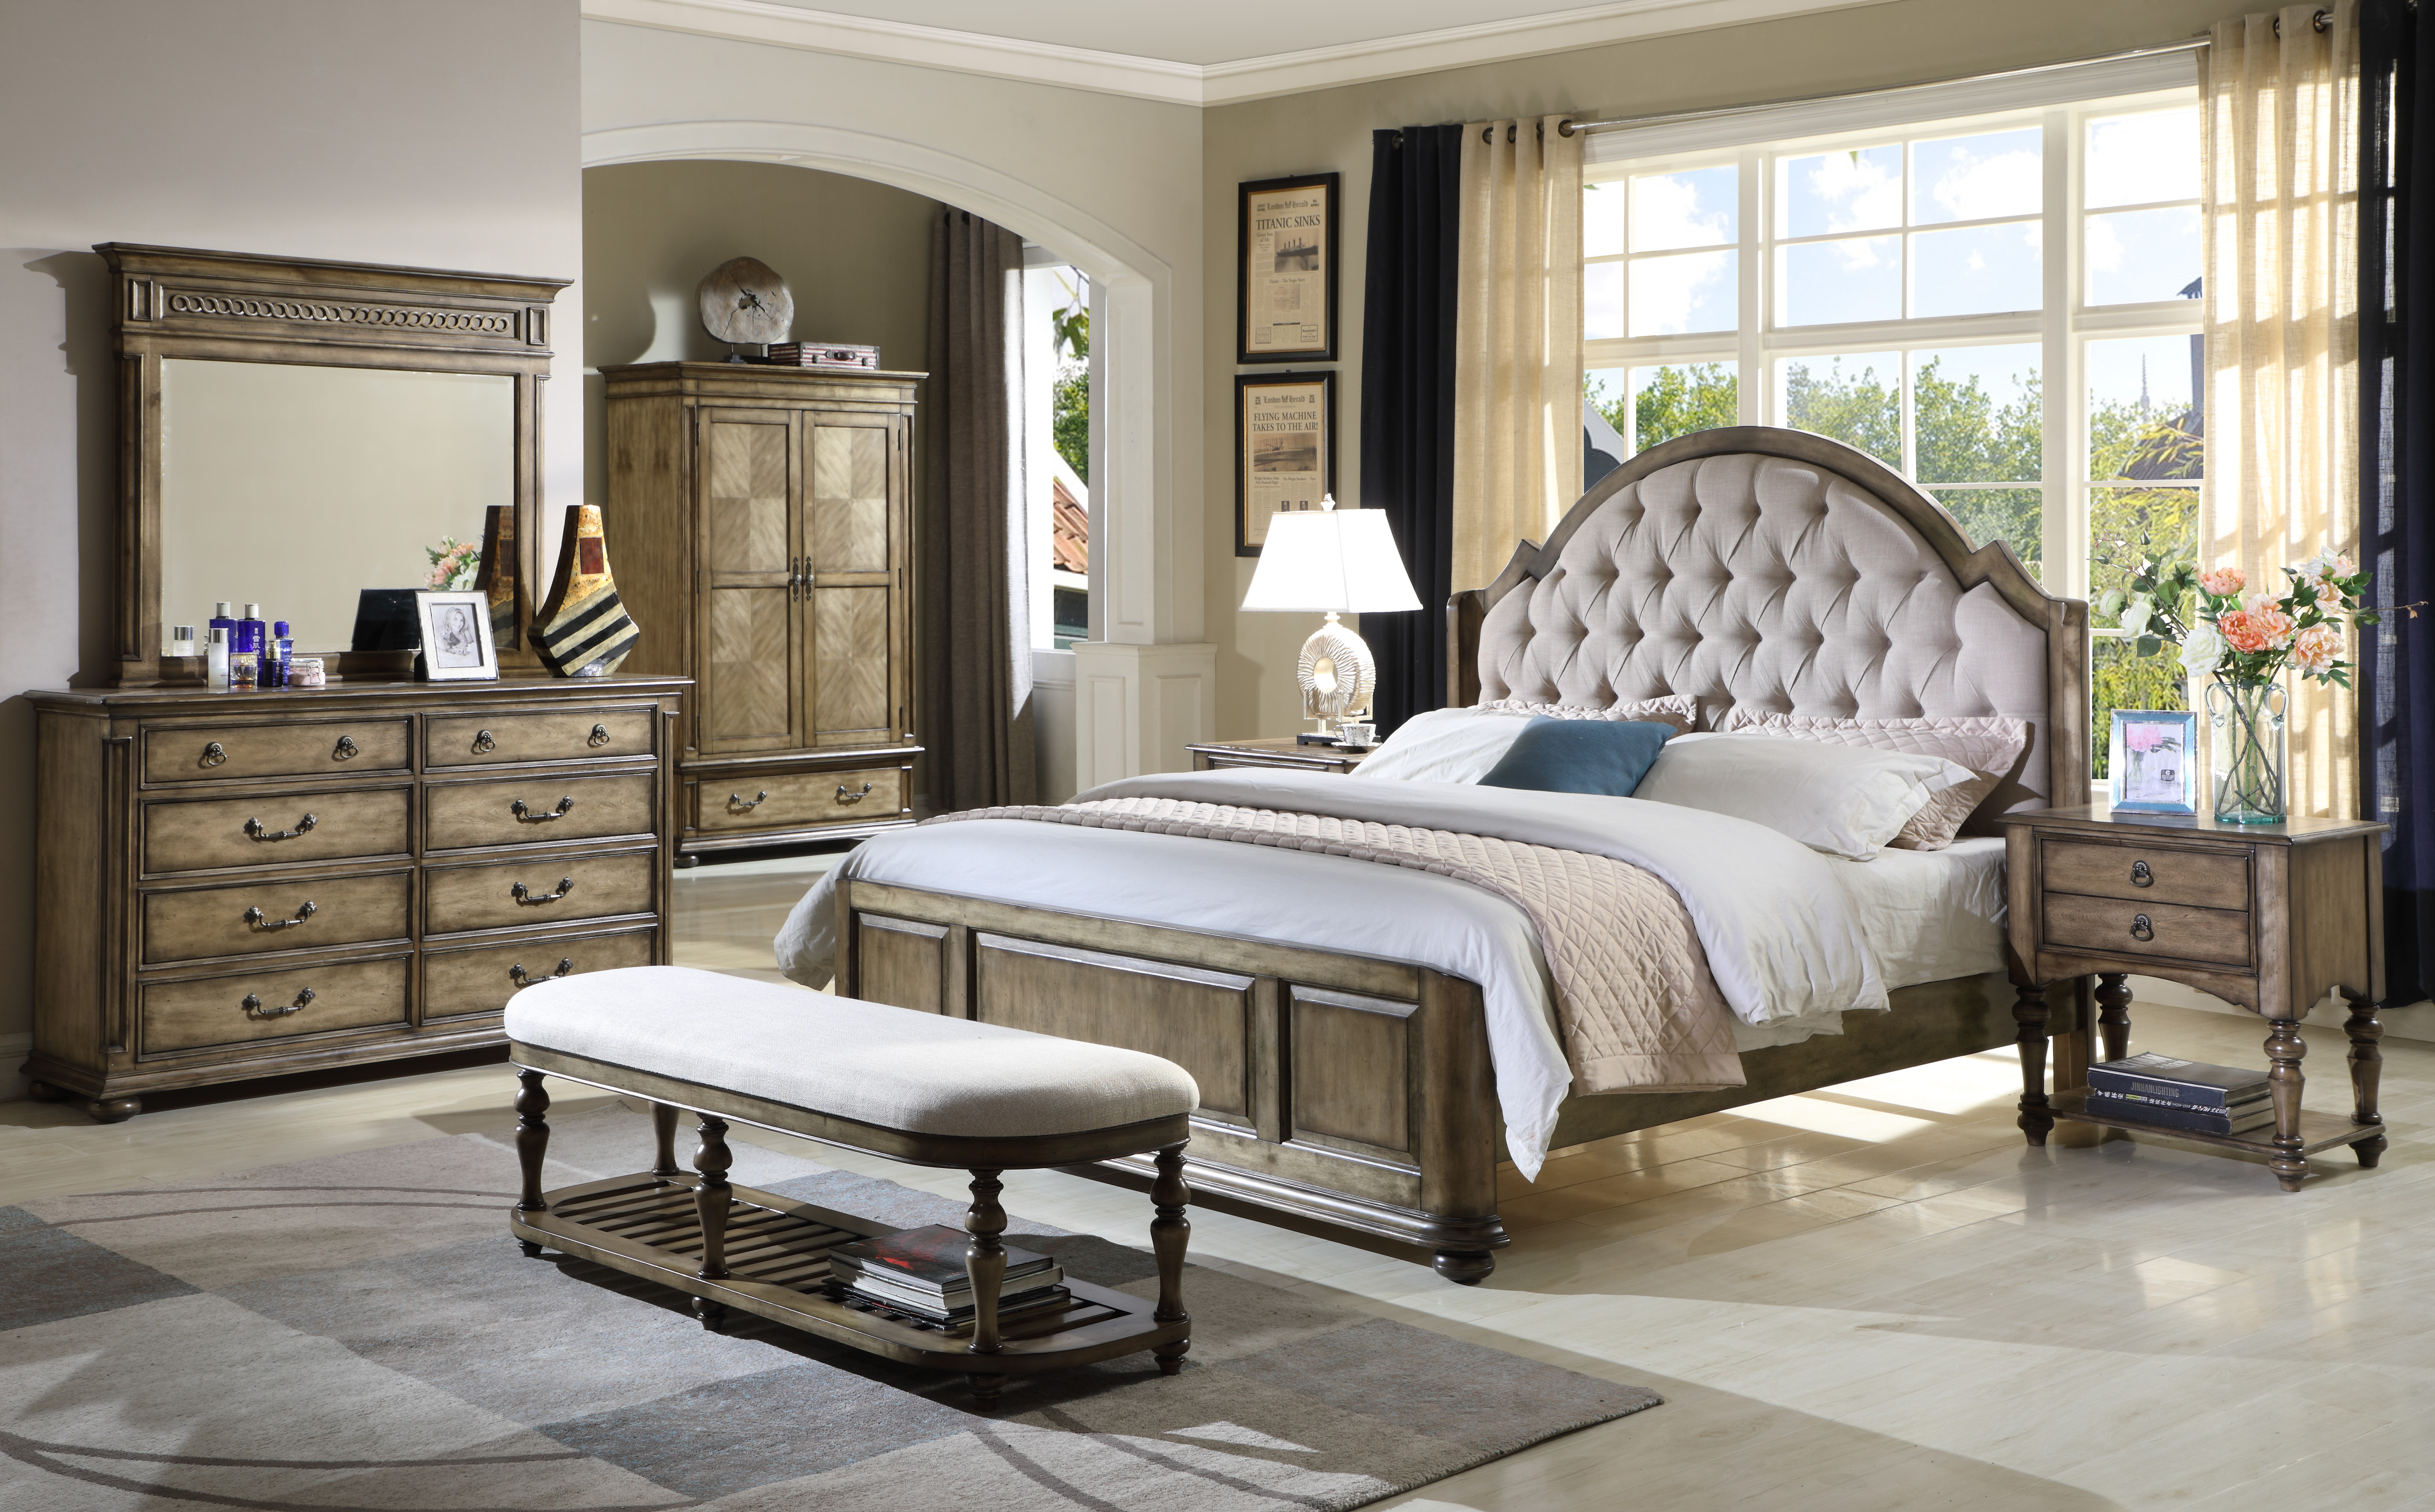 Antique wooden bedroom set furniture king queen size bed wardrobe and chest  of drawers